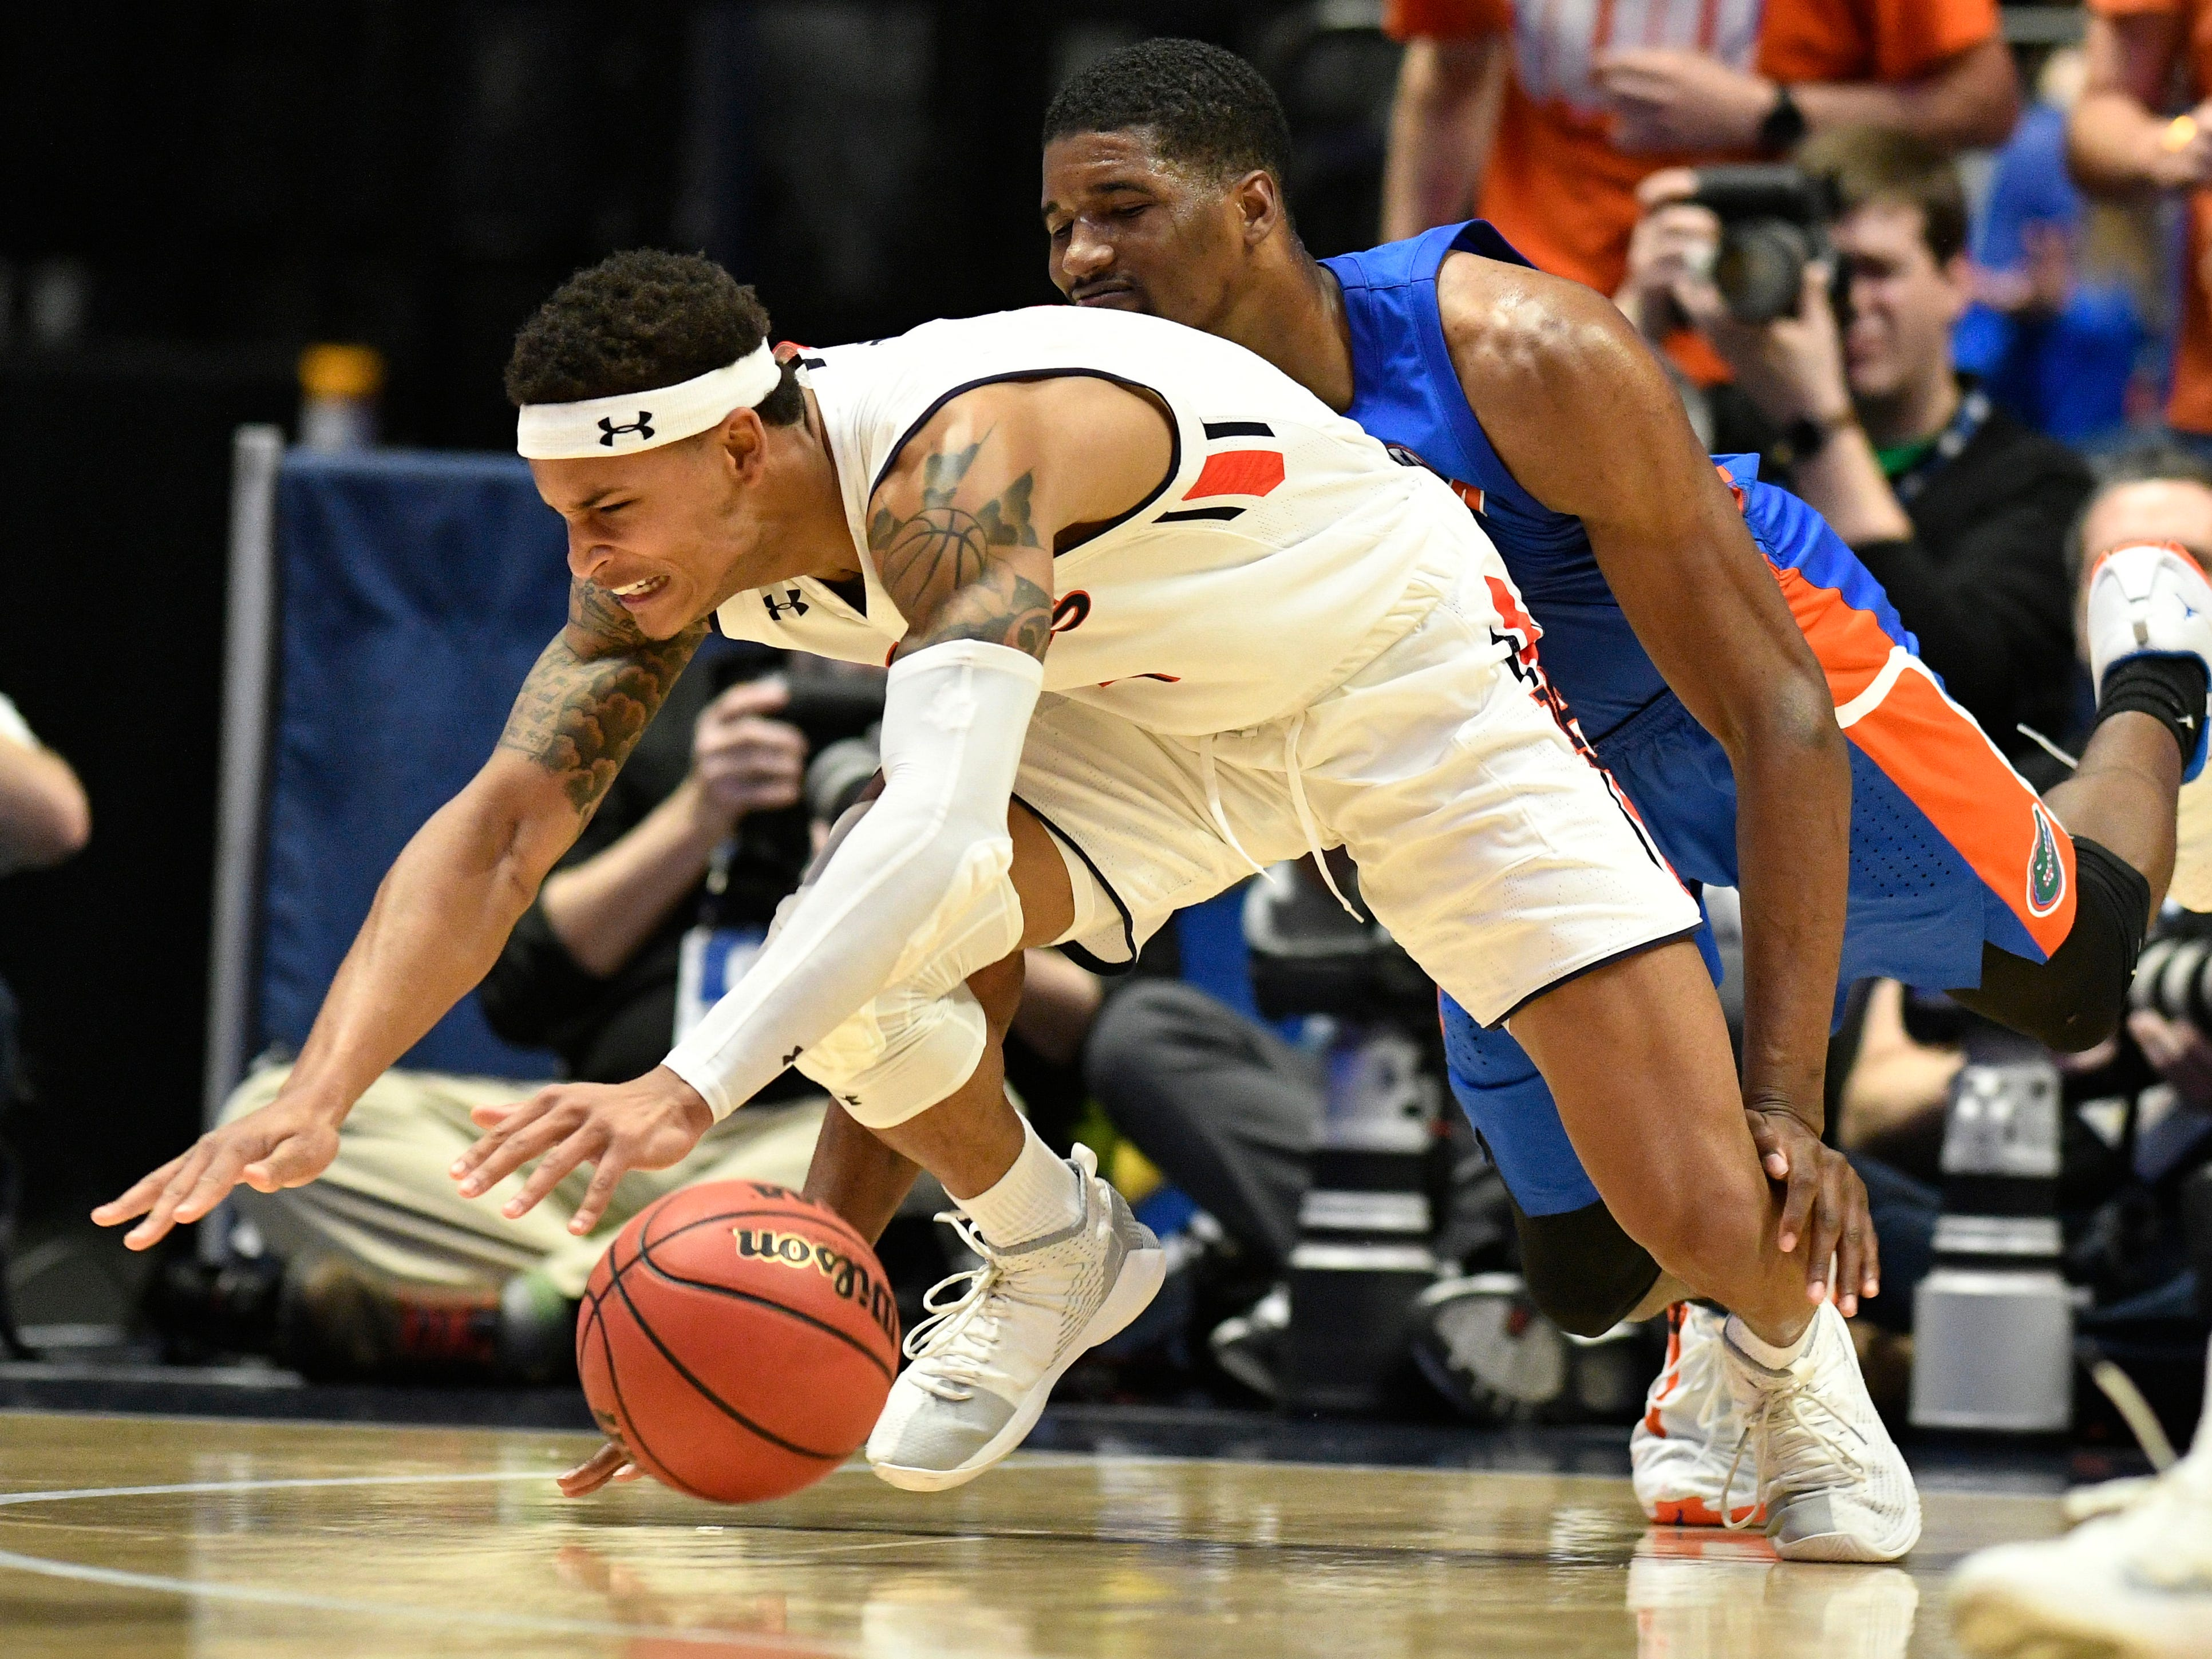 Auburn guard Bryce Brown (2) battles for the ball with Florida center Kevarrius Hayes (13) during the second half of the SEC Men's Basketball Tournament game at Bridgestone Arena in Nashville, Tenn., Saturday, March 16, 2019.